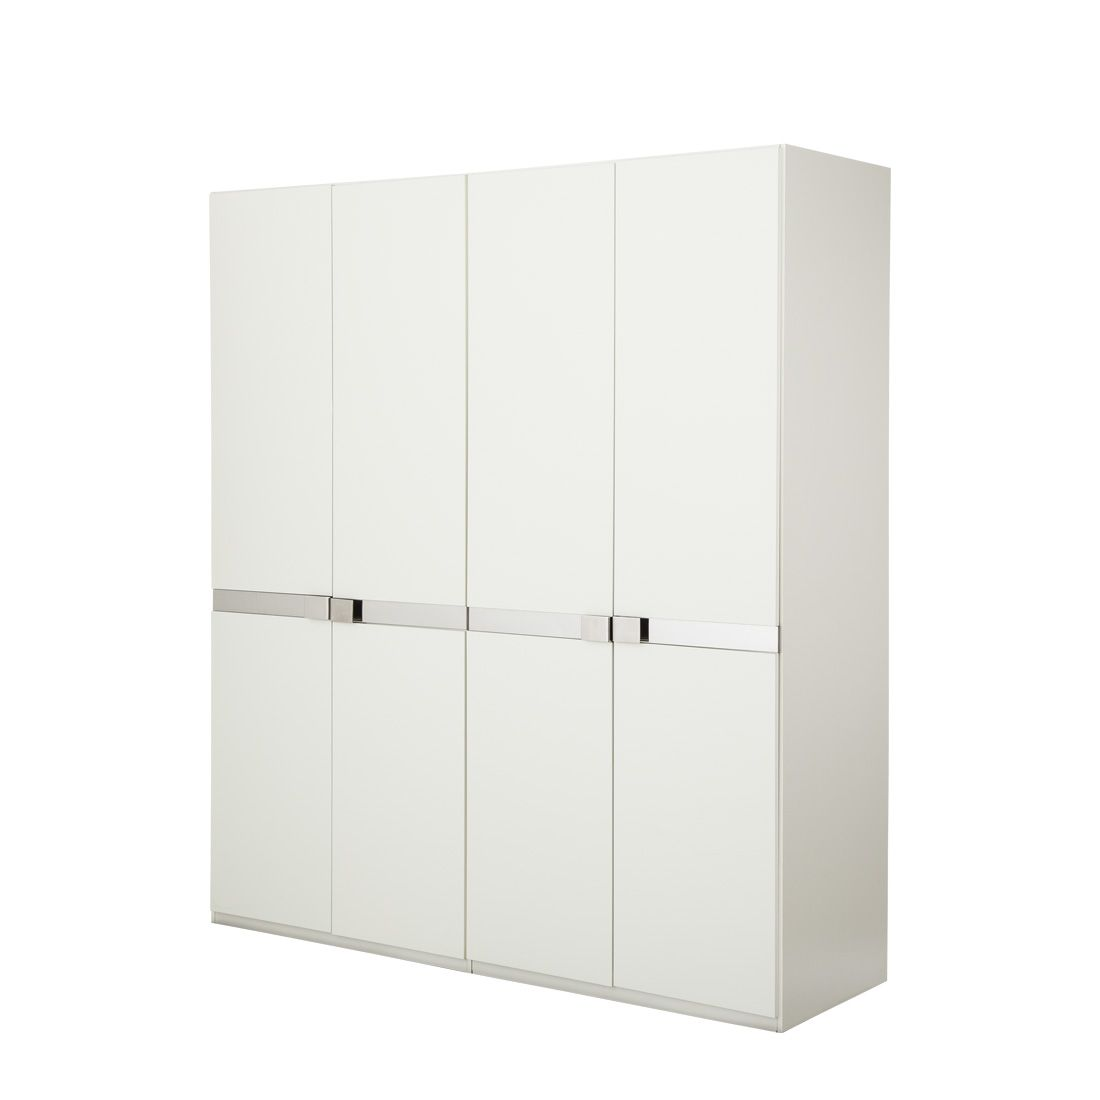 dreht renschrank safe4 alpinwei pearlglanz softwhite schrankbreite 300 cm 3 t rig. Black Bedroom Furniture Sets. Home Design Ideas